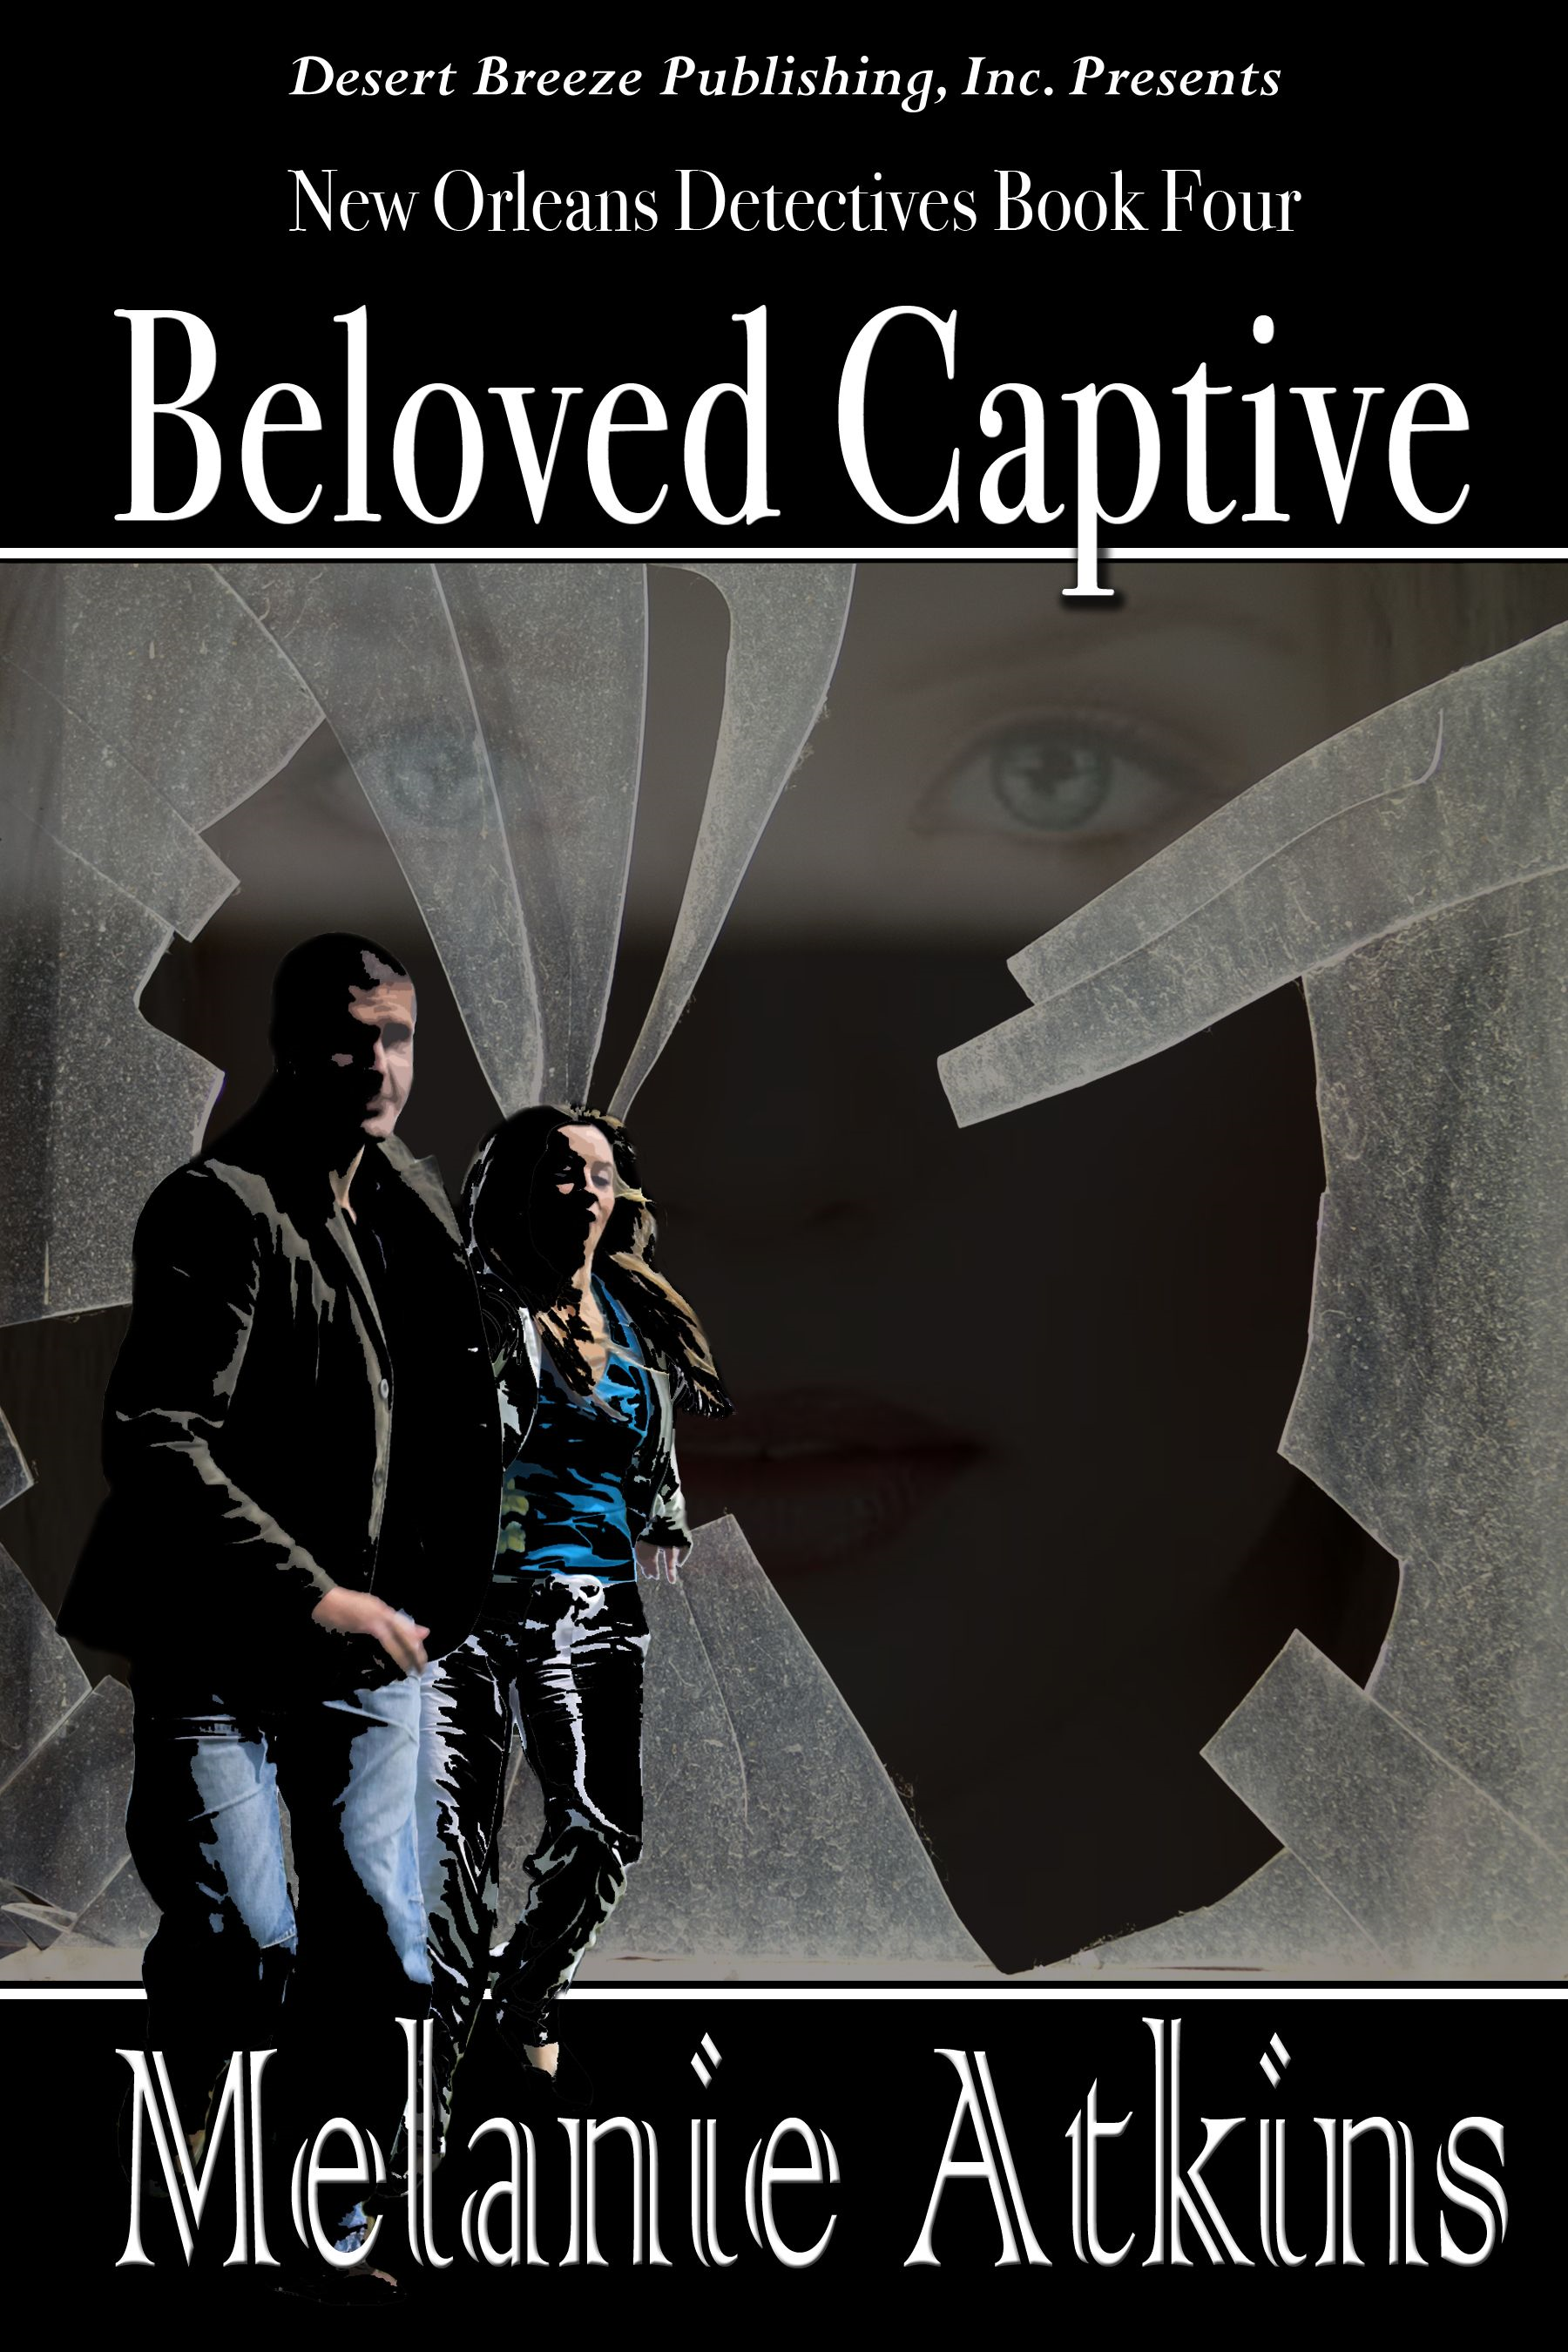 New Orleans Detectives Book Four: Beloved Captive